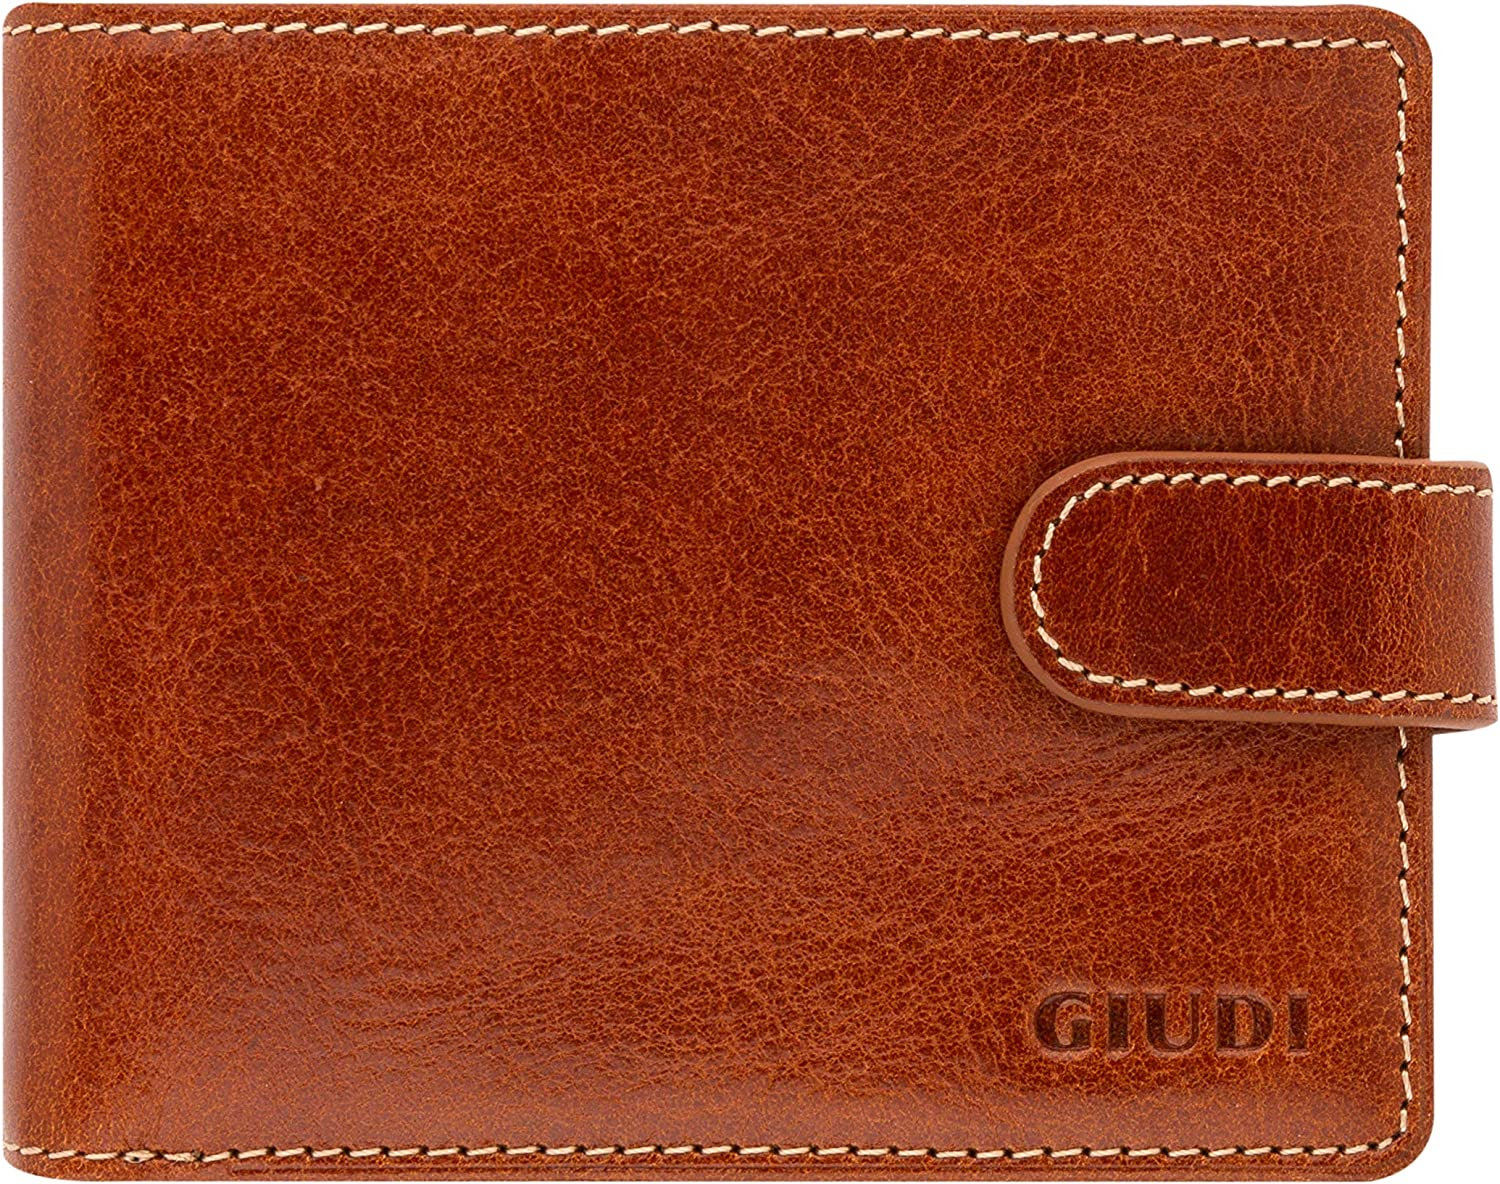 Giudi Deluxe Genuine Leather Bifold Mens Wallet – Made in Italy – Beautiful Light Brown Color – 3 Credit Card Slots – Coin Pocket – Button Snap Closure – Excellent Gift for Men